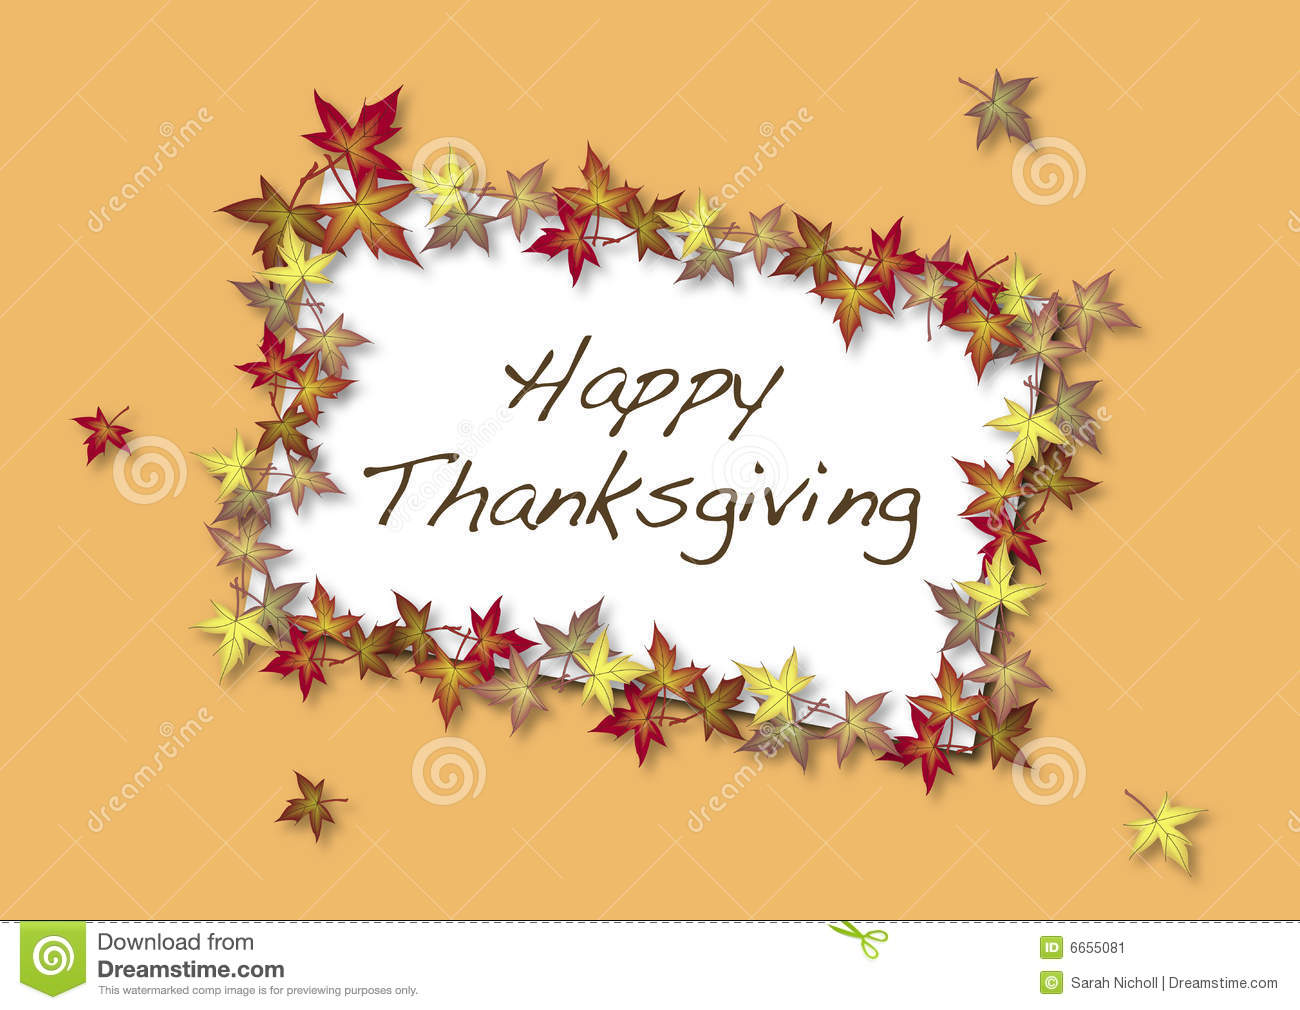 Happy thanksgiving card stock illustration illustration of happy thanksgiving card kristyandbryce Choice Image